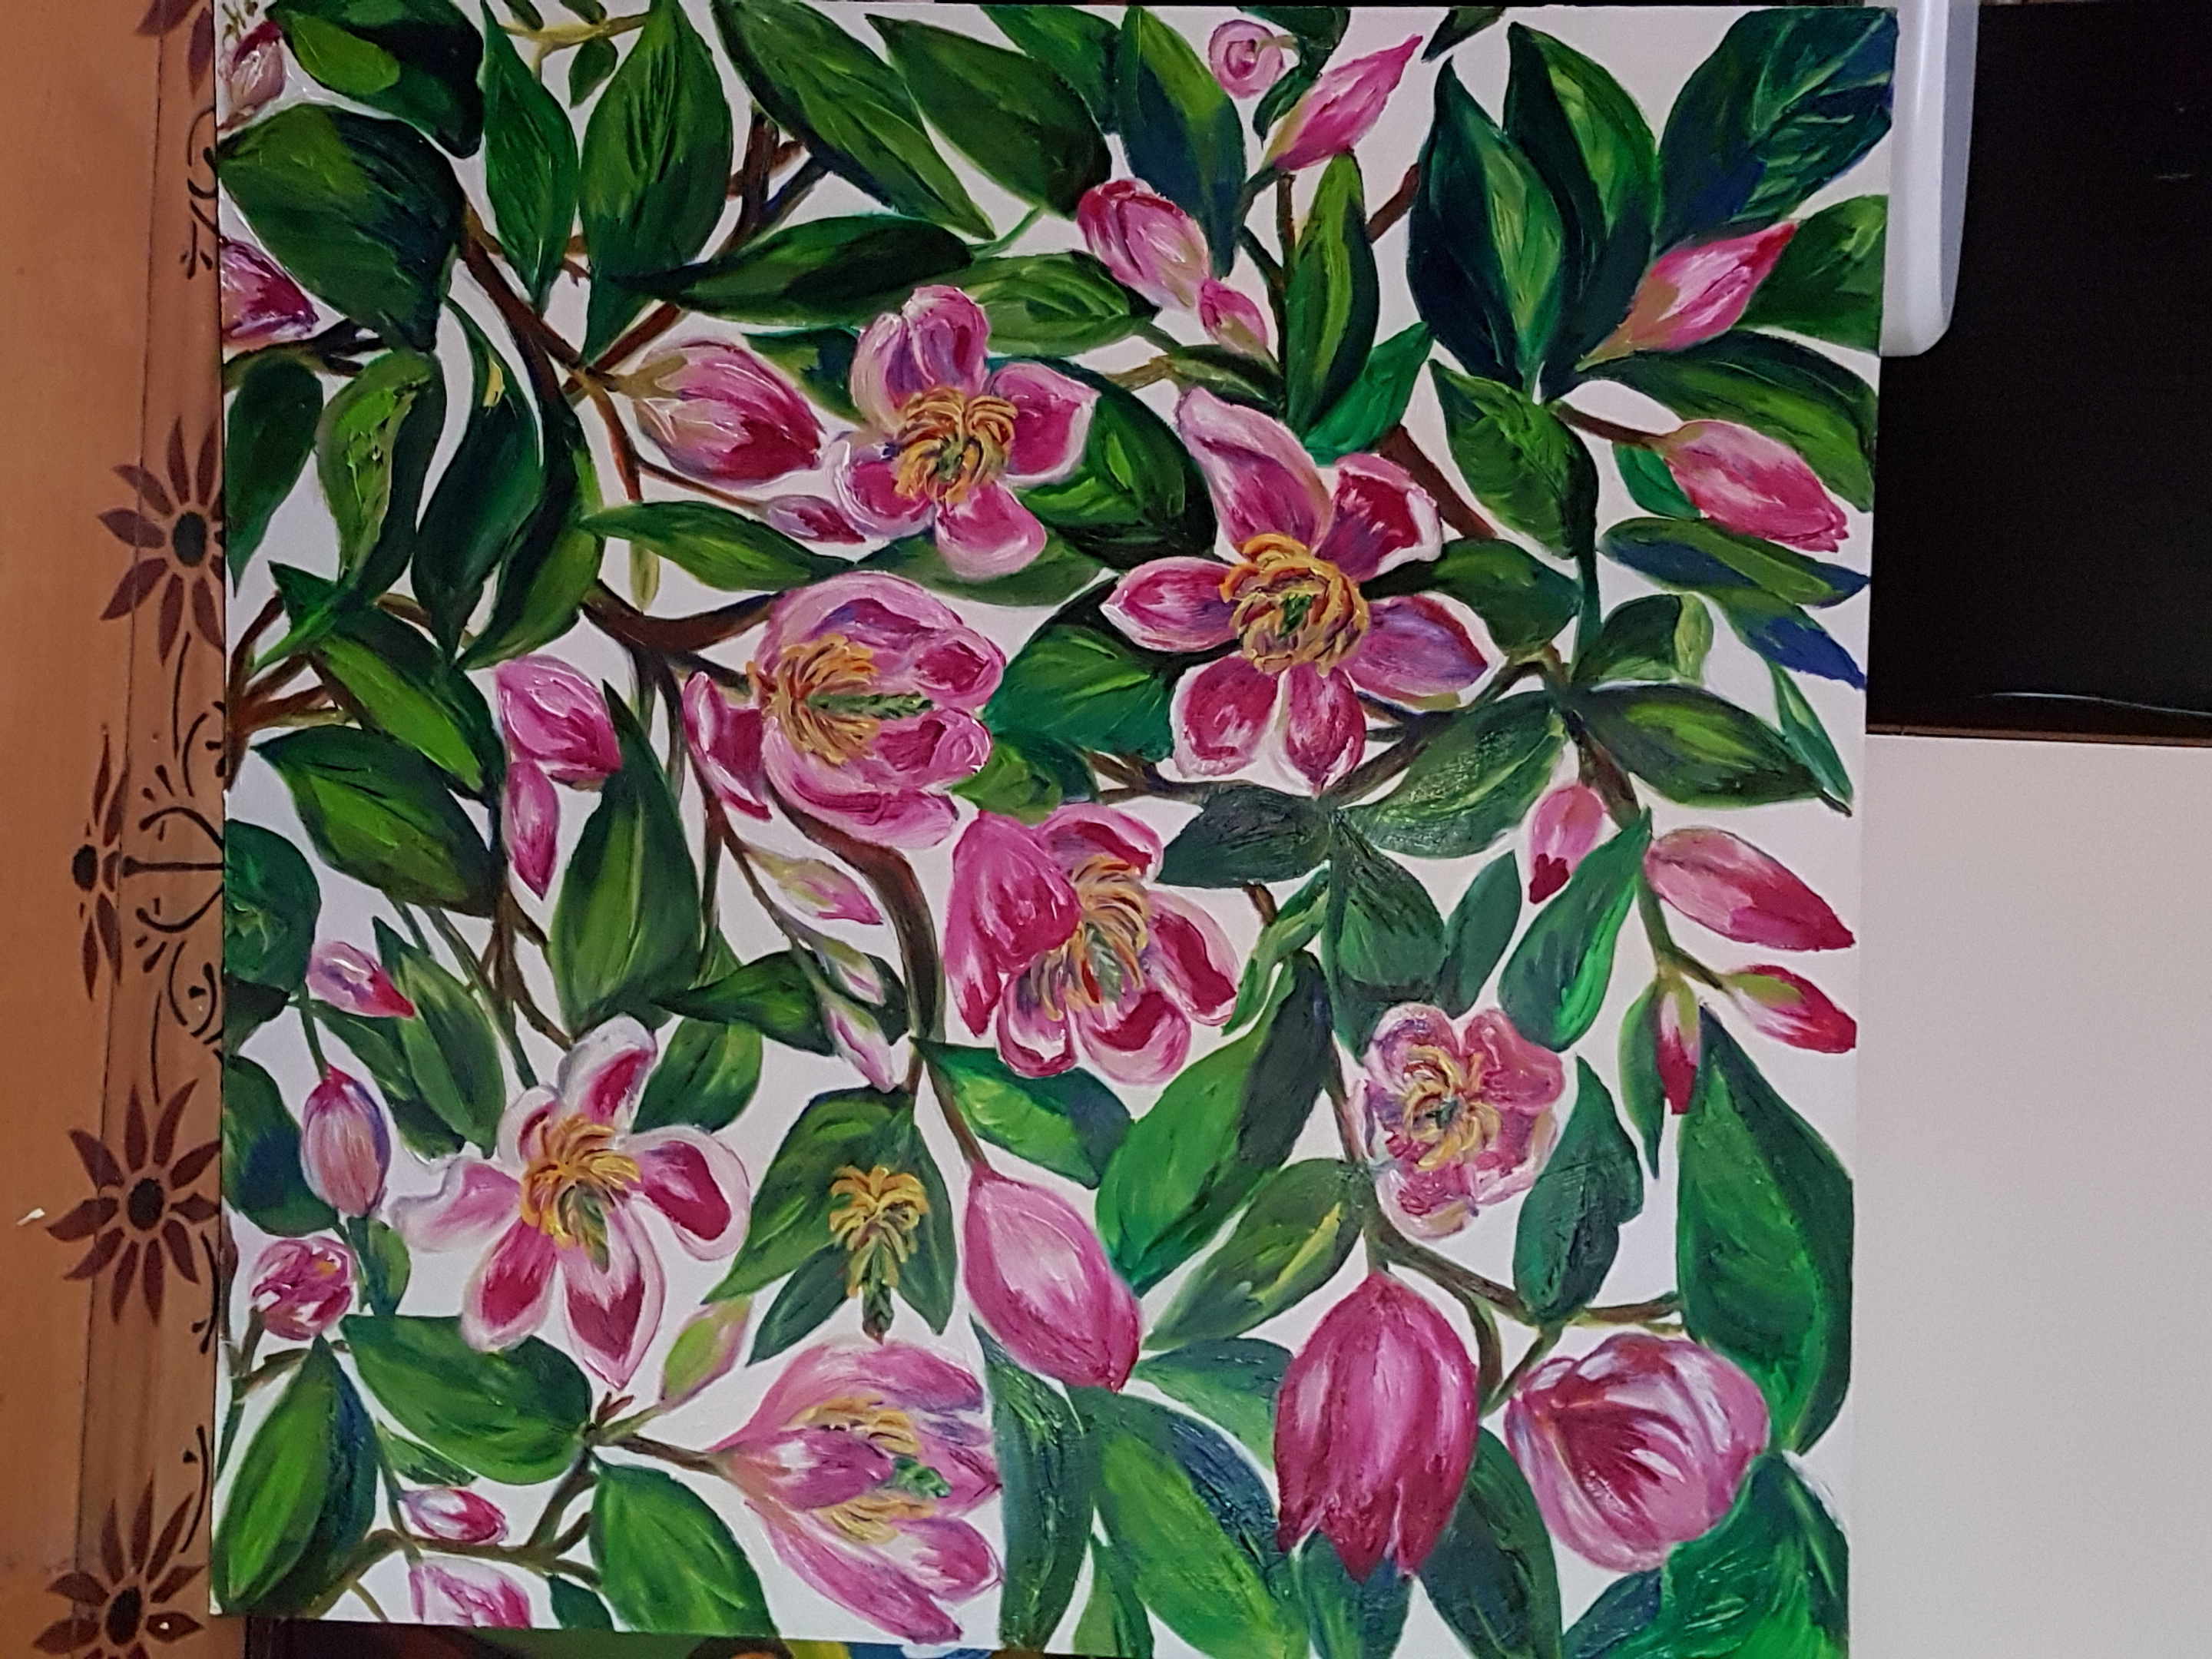 Port Wine Magnolias - SOLD